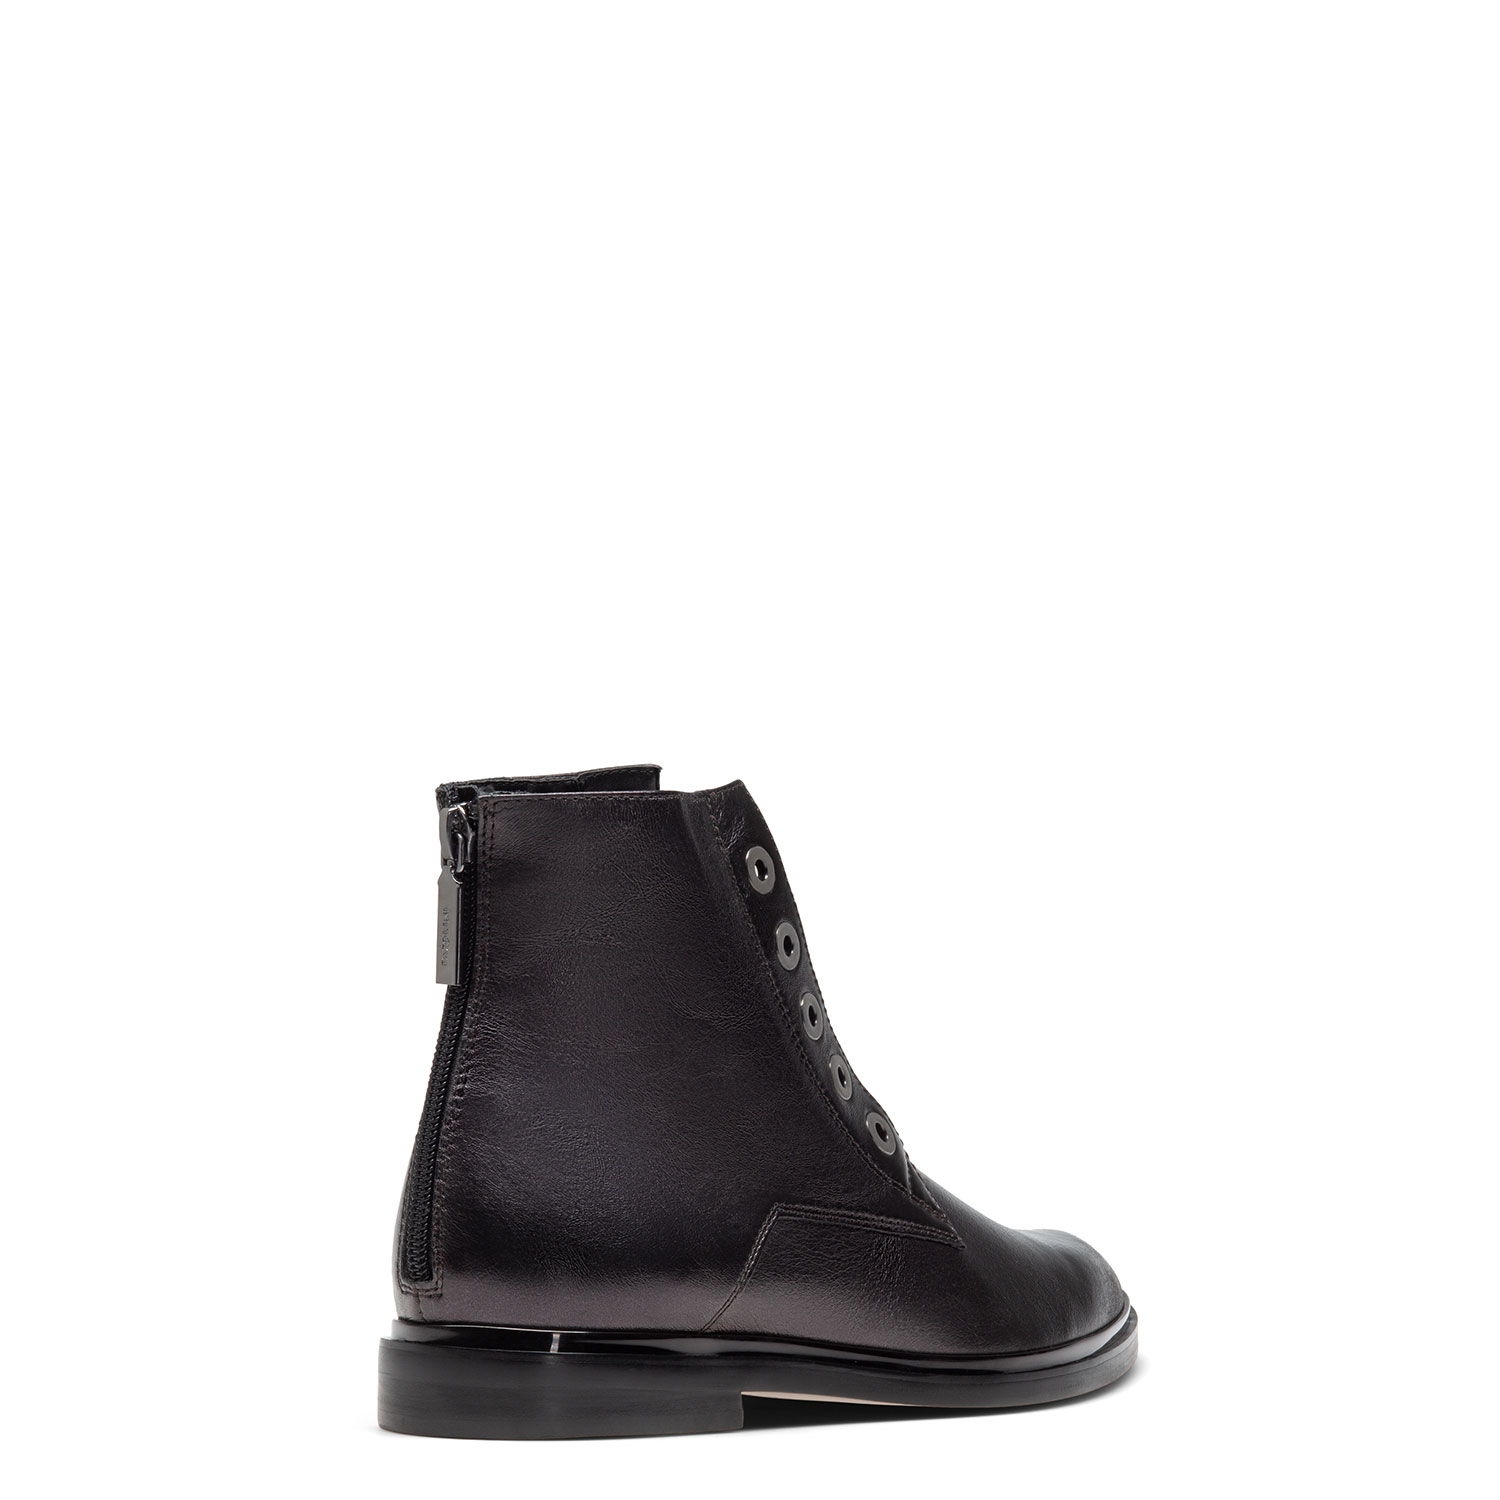 Women's ankle boots PAZOLINI FG-SON8-9